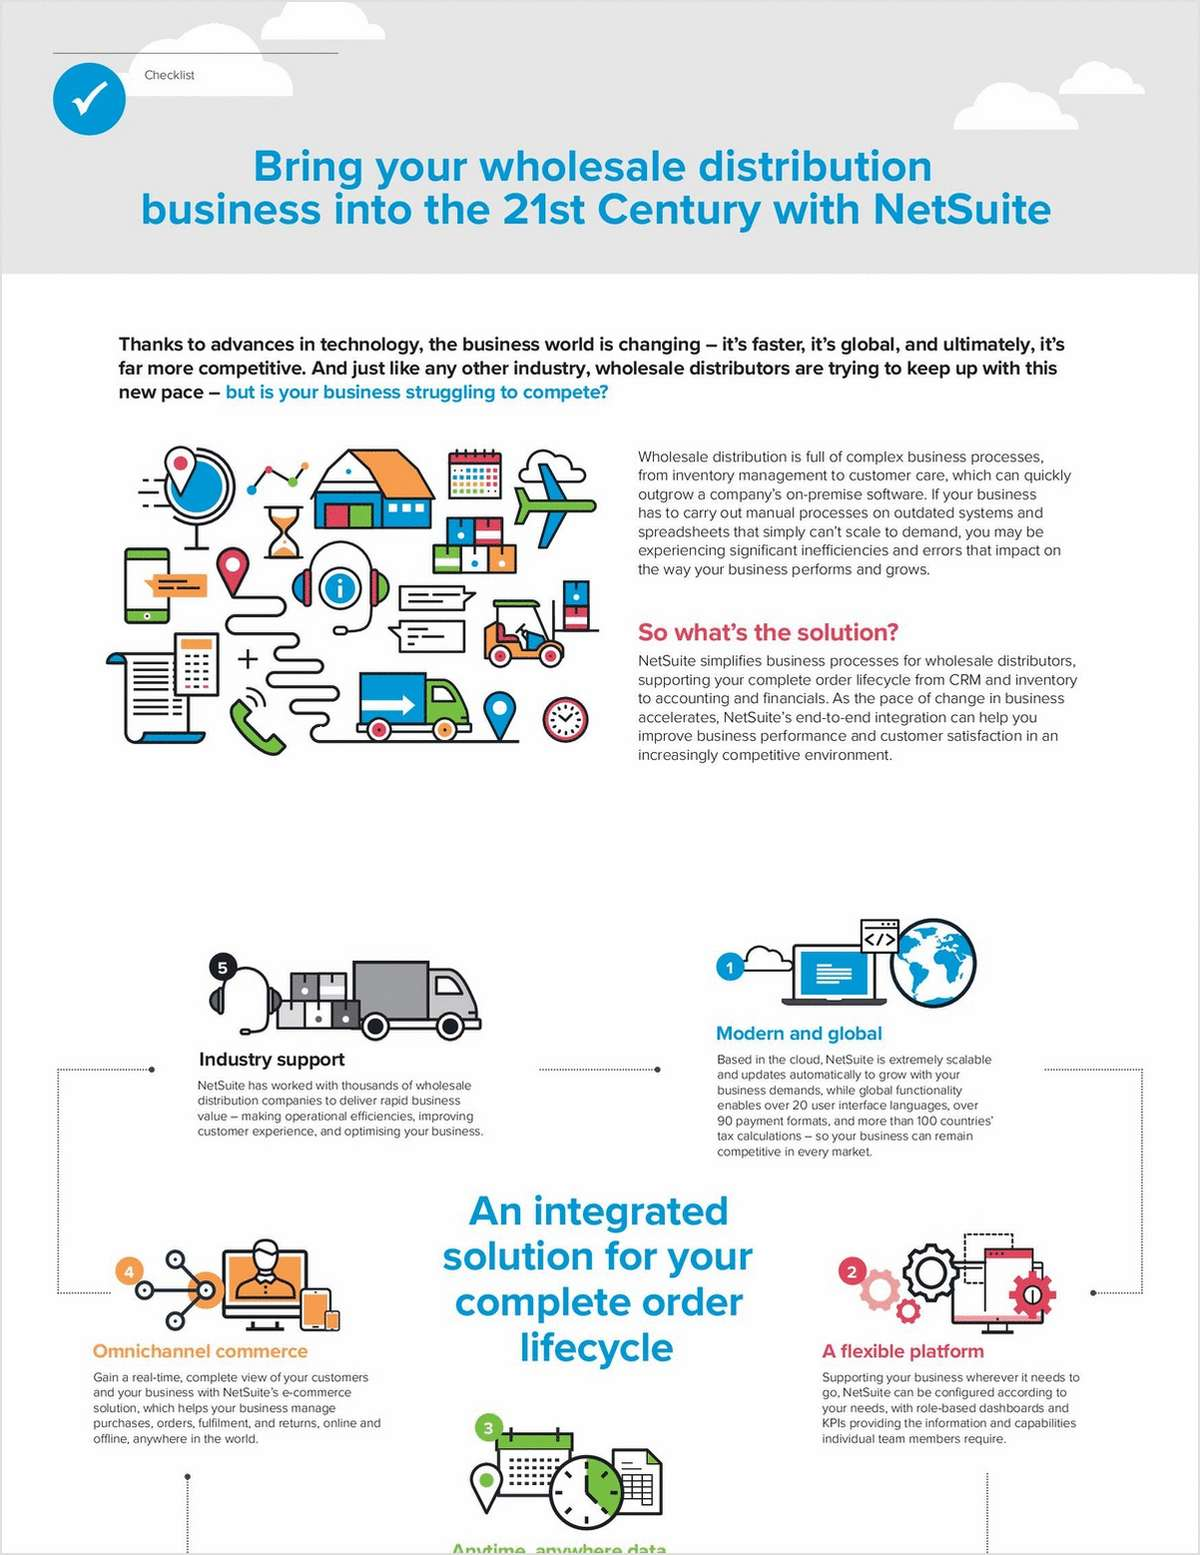 Bring your Wholesale Distribution Business into the 21st Century with NetSuite